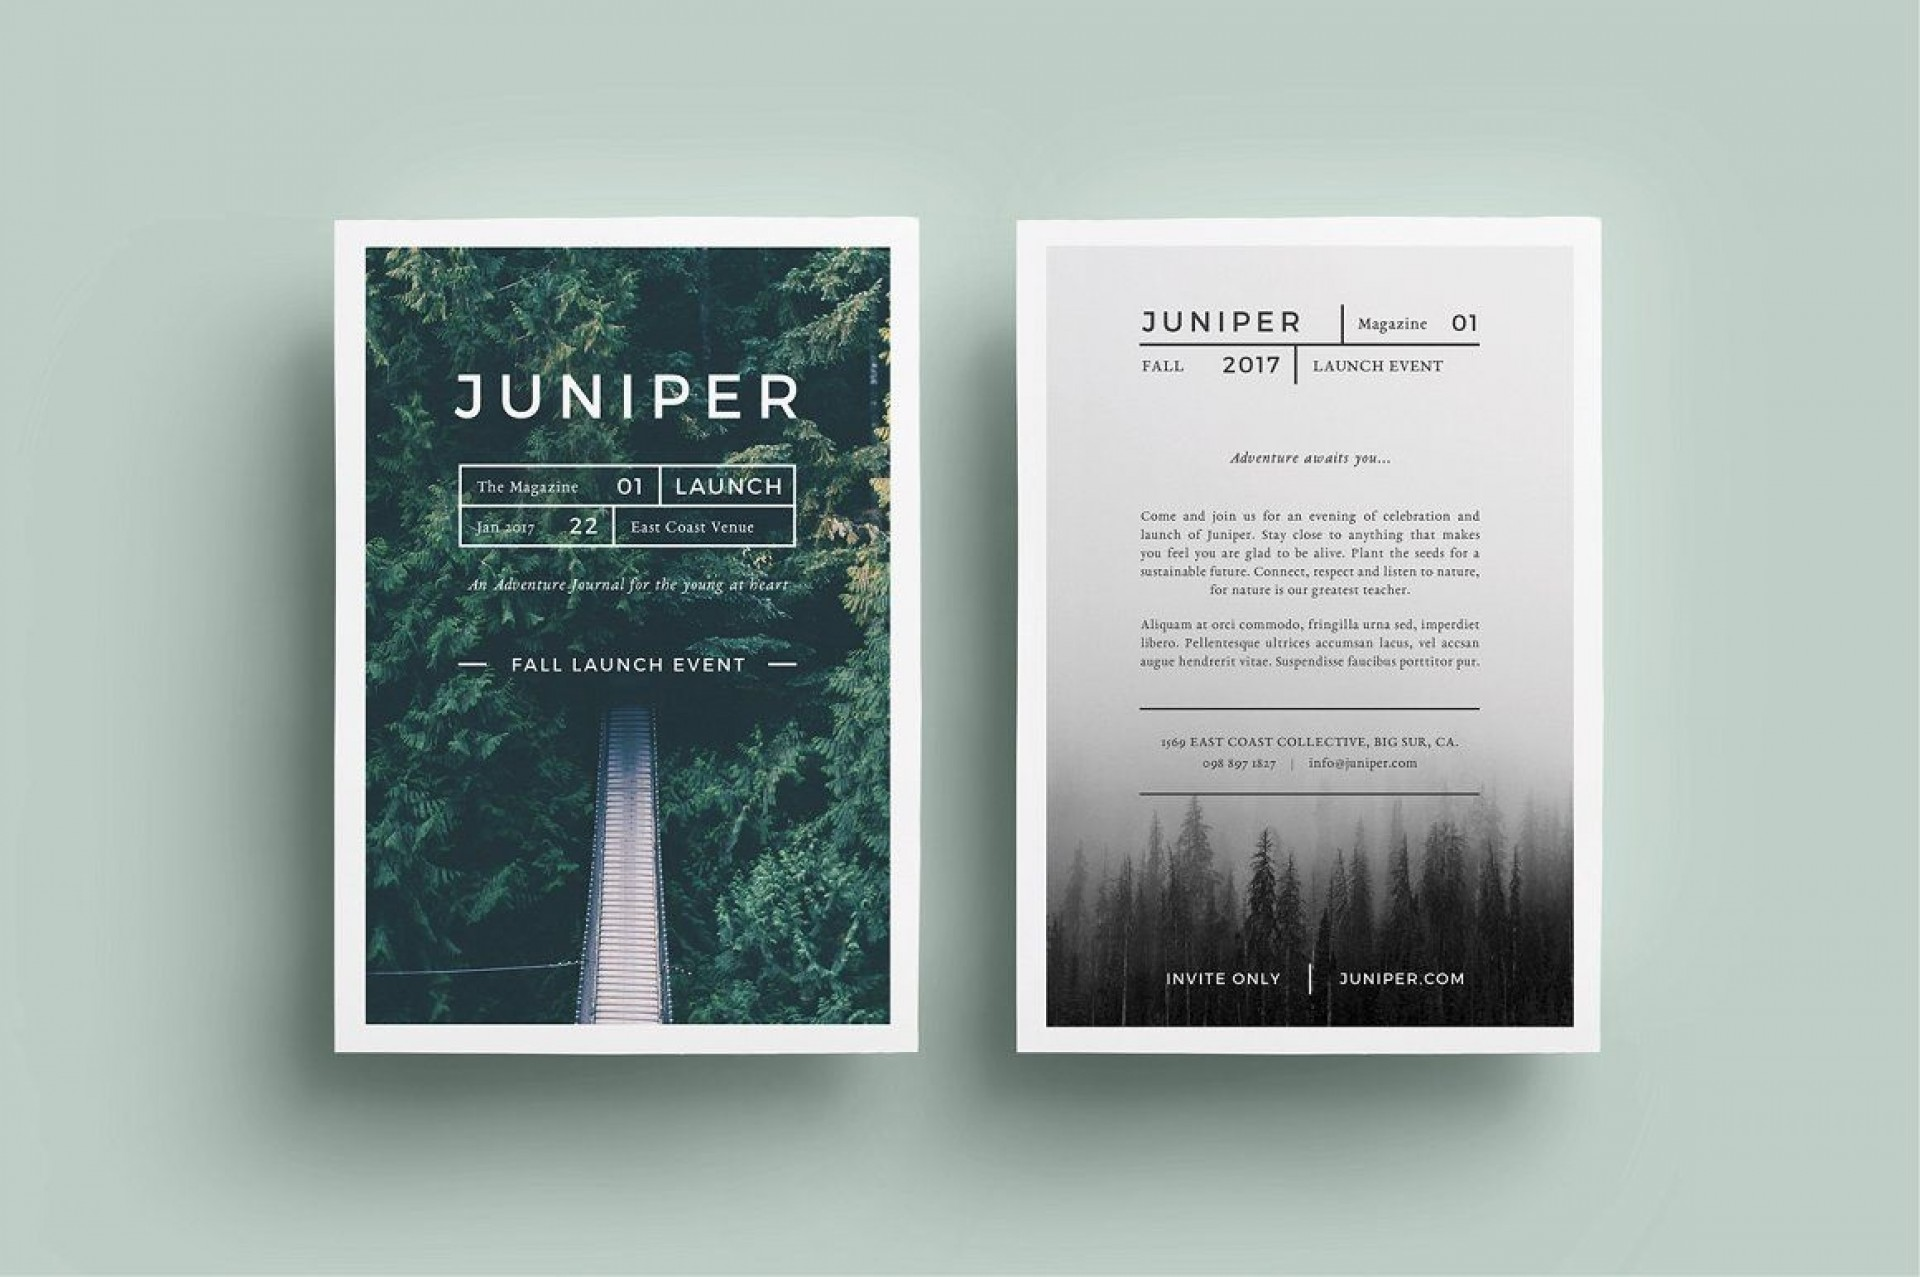 005 Top In Design Flyer Template Inspiration  Indesign Free Adobe Download1920